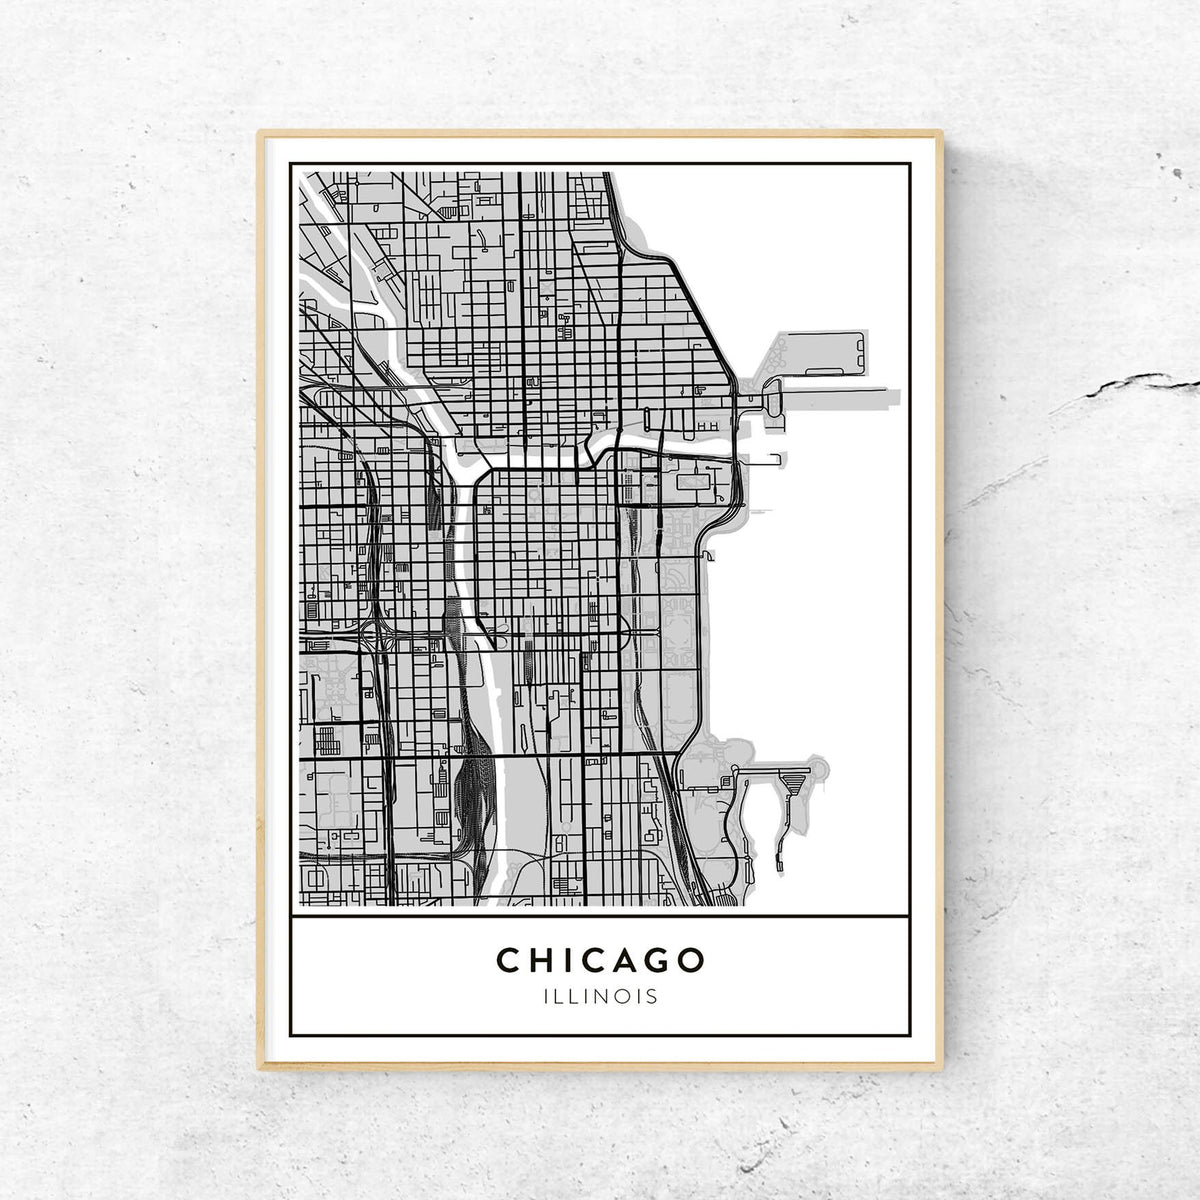 Chicago, Illinois - Custom Map Art Print (Portrait) on printable map of chicago attractions, map of north lake shore drive chicago, printable road map of illinois, printable map of downtown chicago magnificent mile, printable map of illinois highways, printable chicago skyline, printable downtown chicago city map, whites bridge chicago, printable map of navy pier chicago, printable map of southern illinois, printable map of northern illinois, map of bad dangerous neighborhoods in chicago, printable map of illinois cities, print map of chicago,